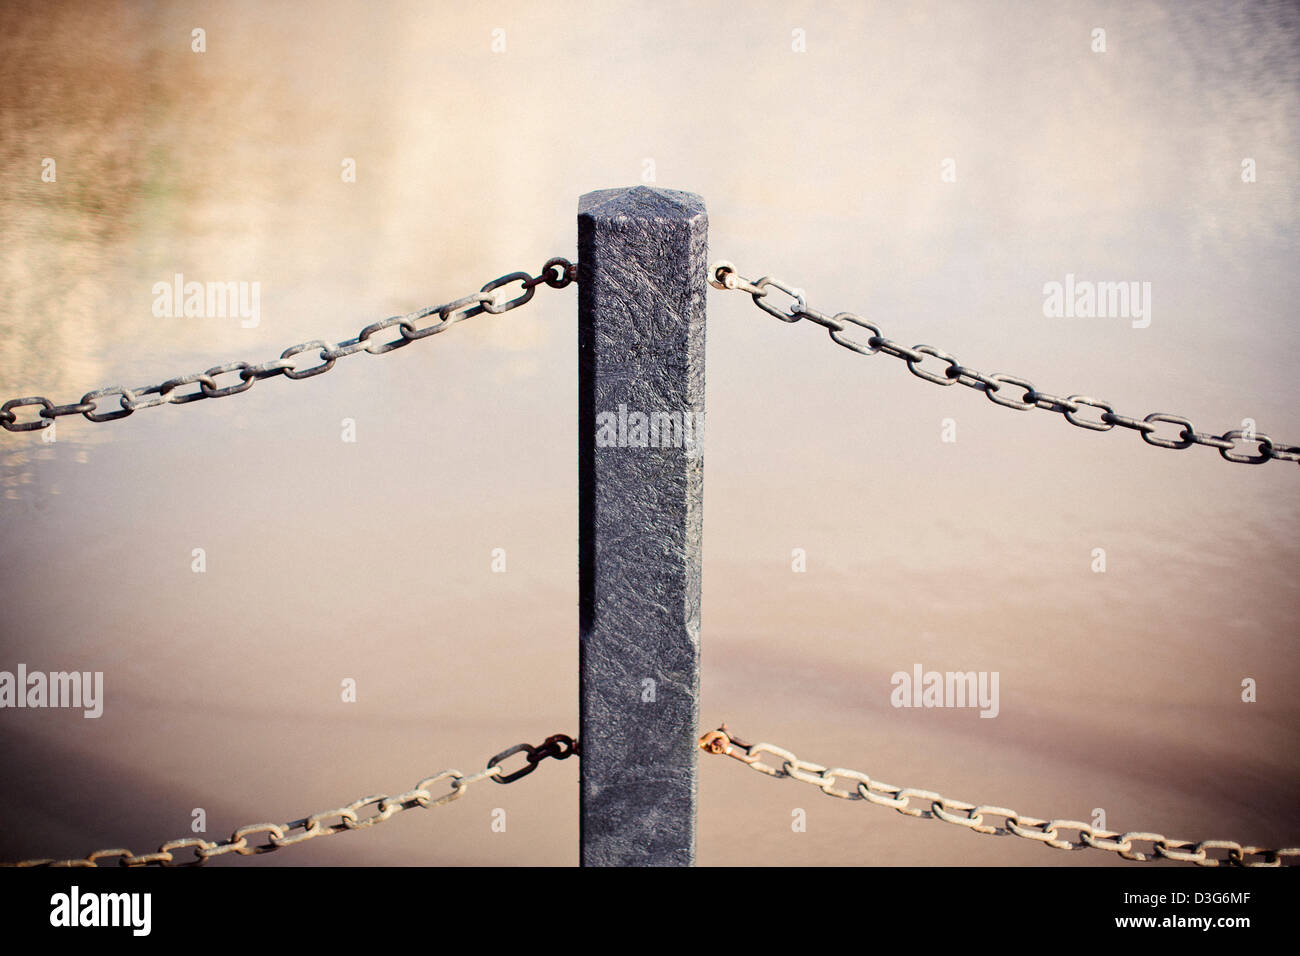 Railings made of recycled plastic material shot with a shallow depth of field next to a pool of water and a concrete - Stock Image